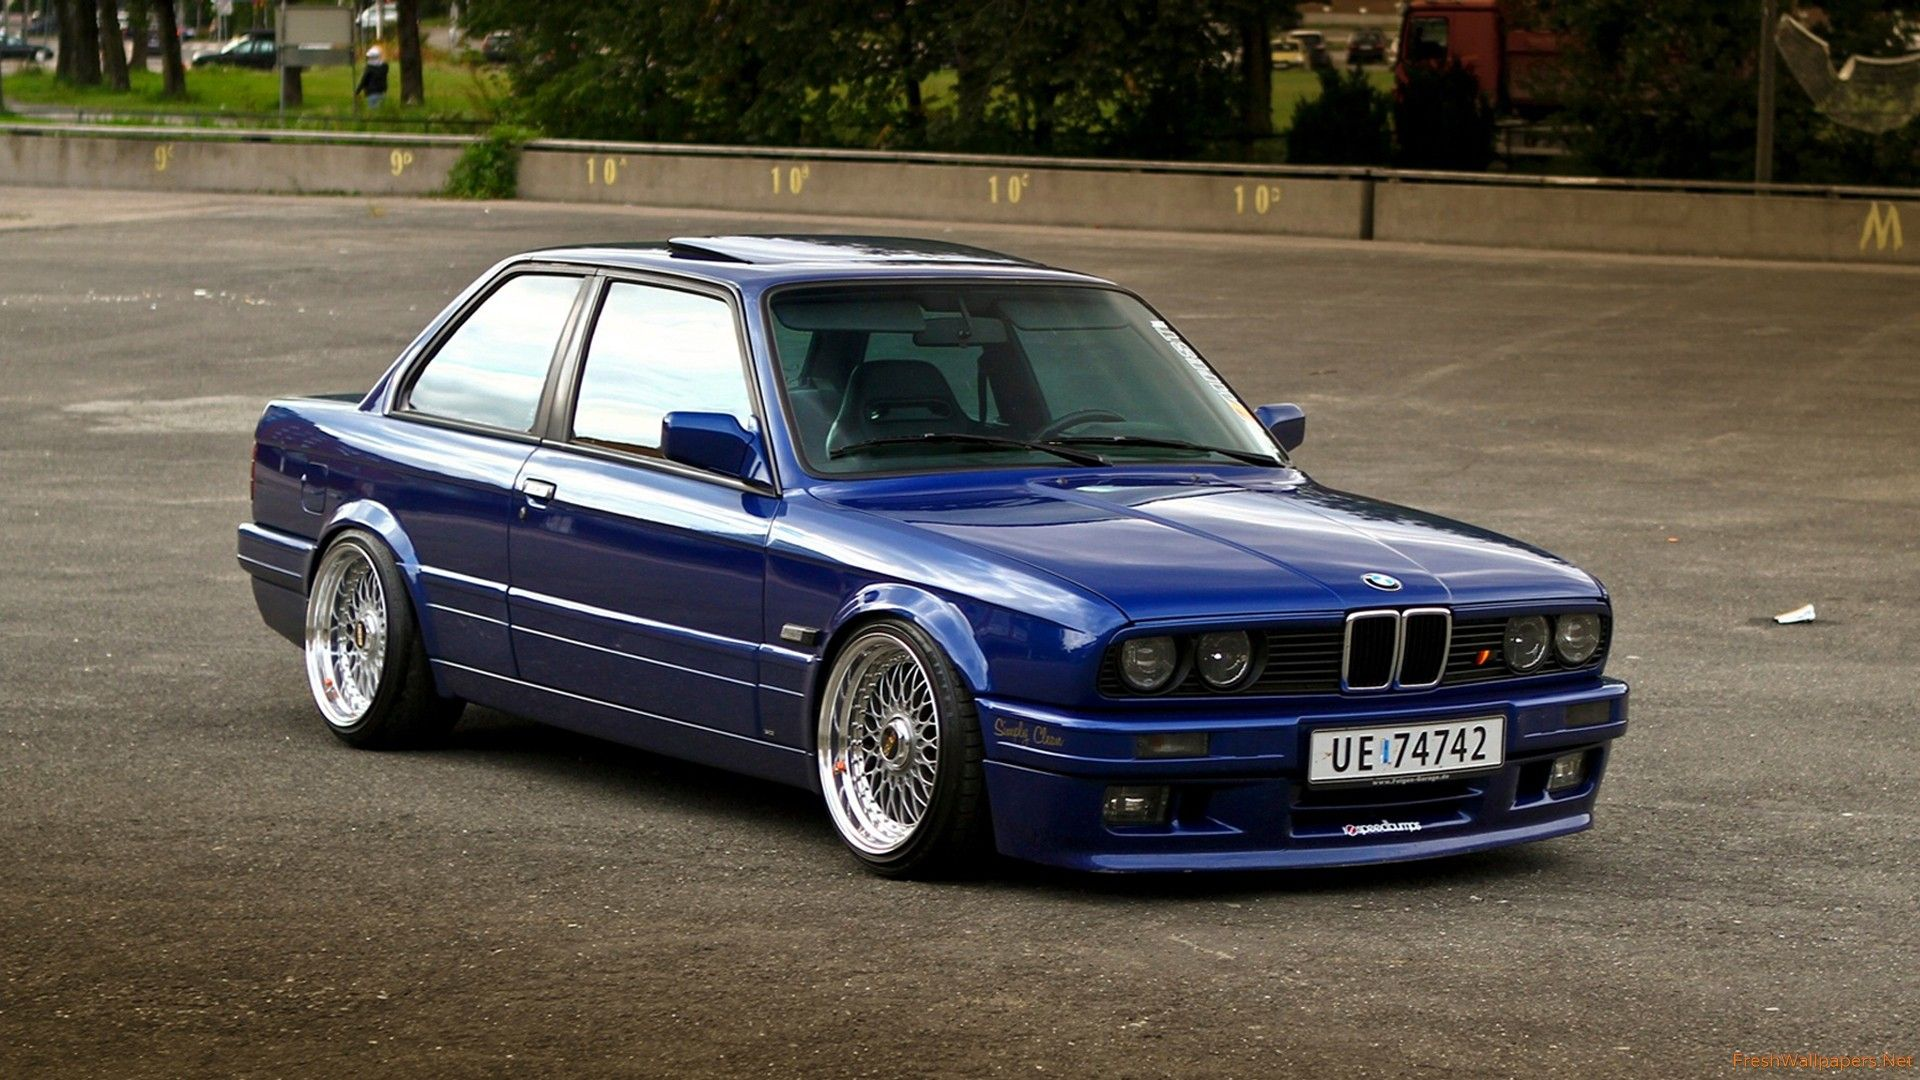 Old Bmw Wallpapers Top Free Old Bmw Backgrounds Wallpaperaccess